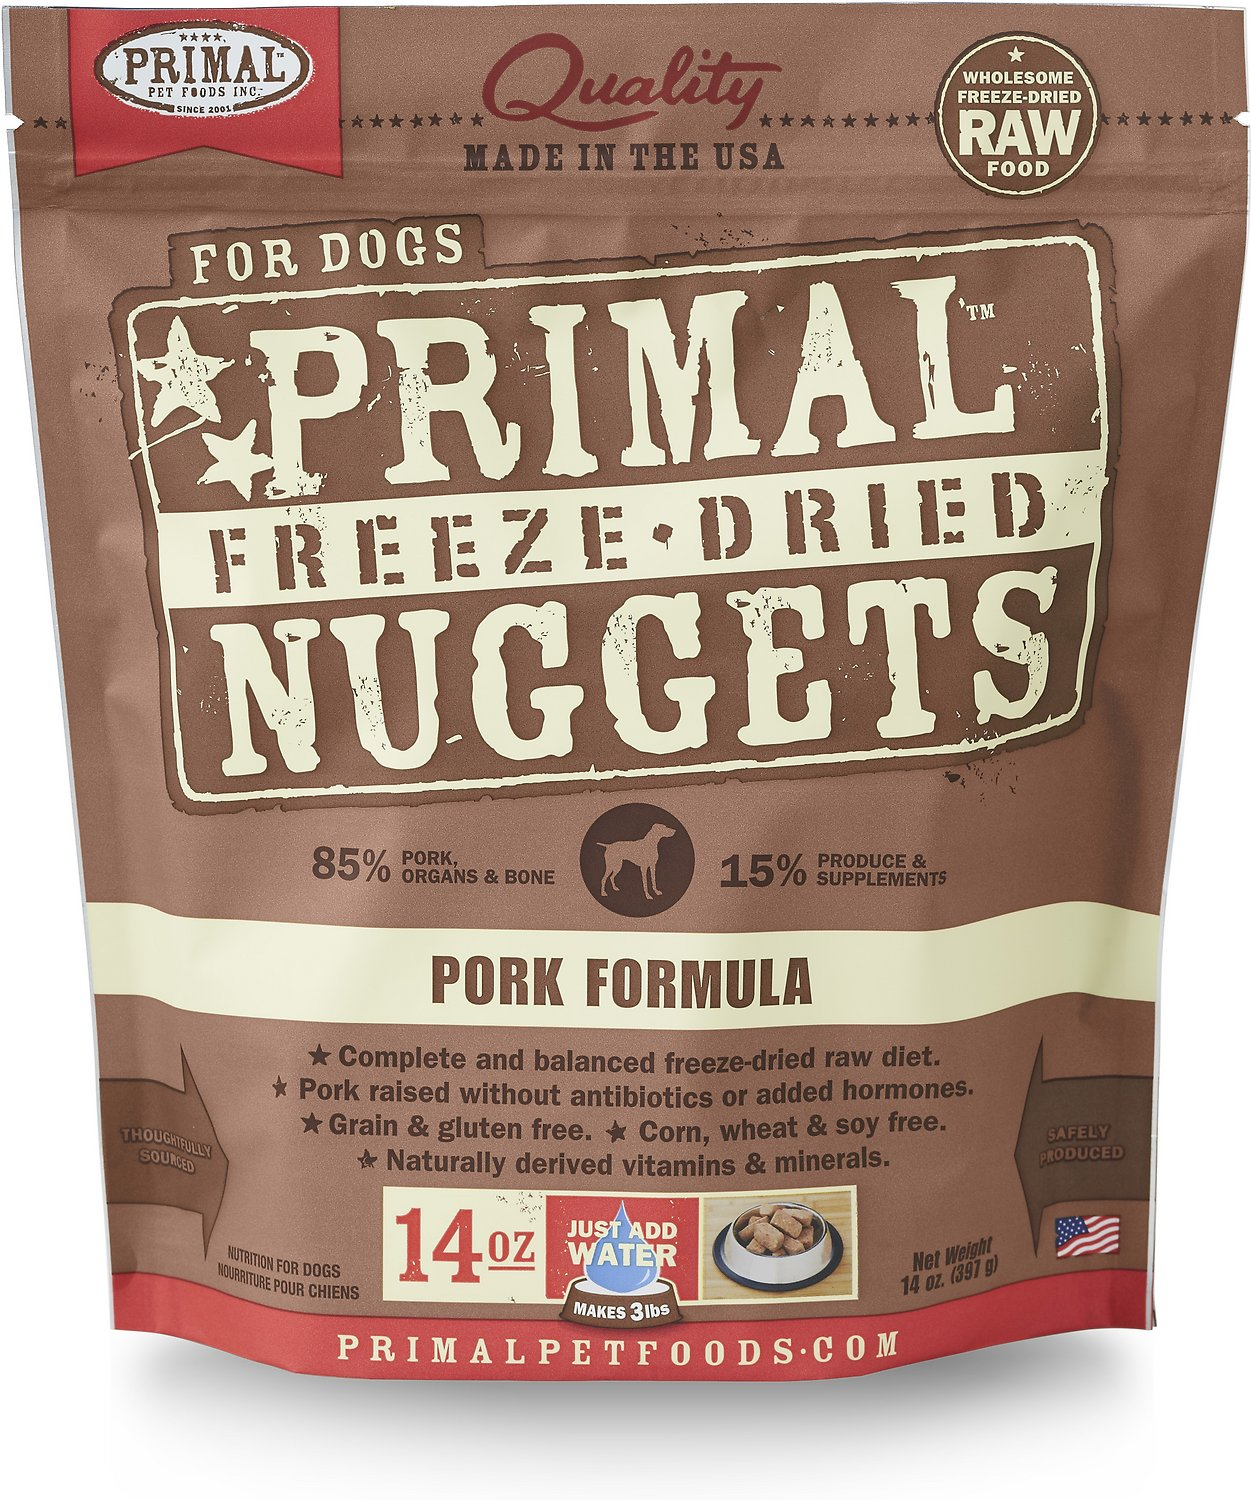 Primal Pork Formula Nuggets Grain-Free Raw Freeze-Dried Dog Food Image